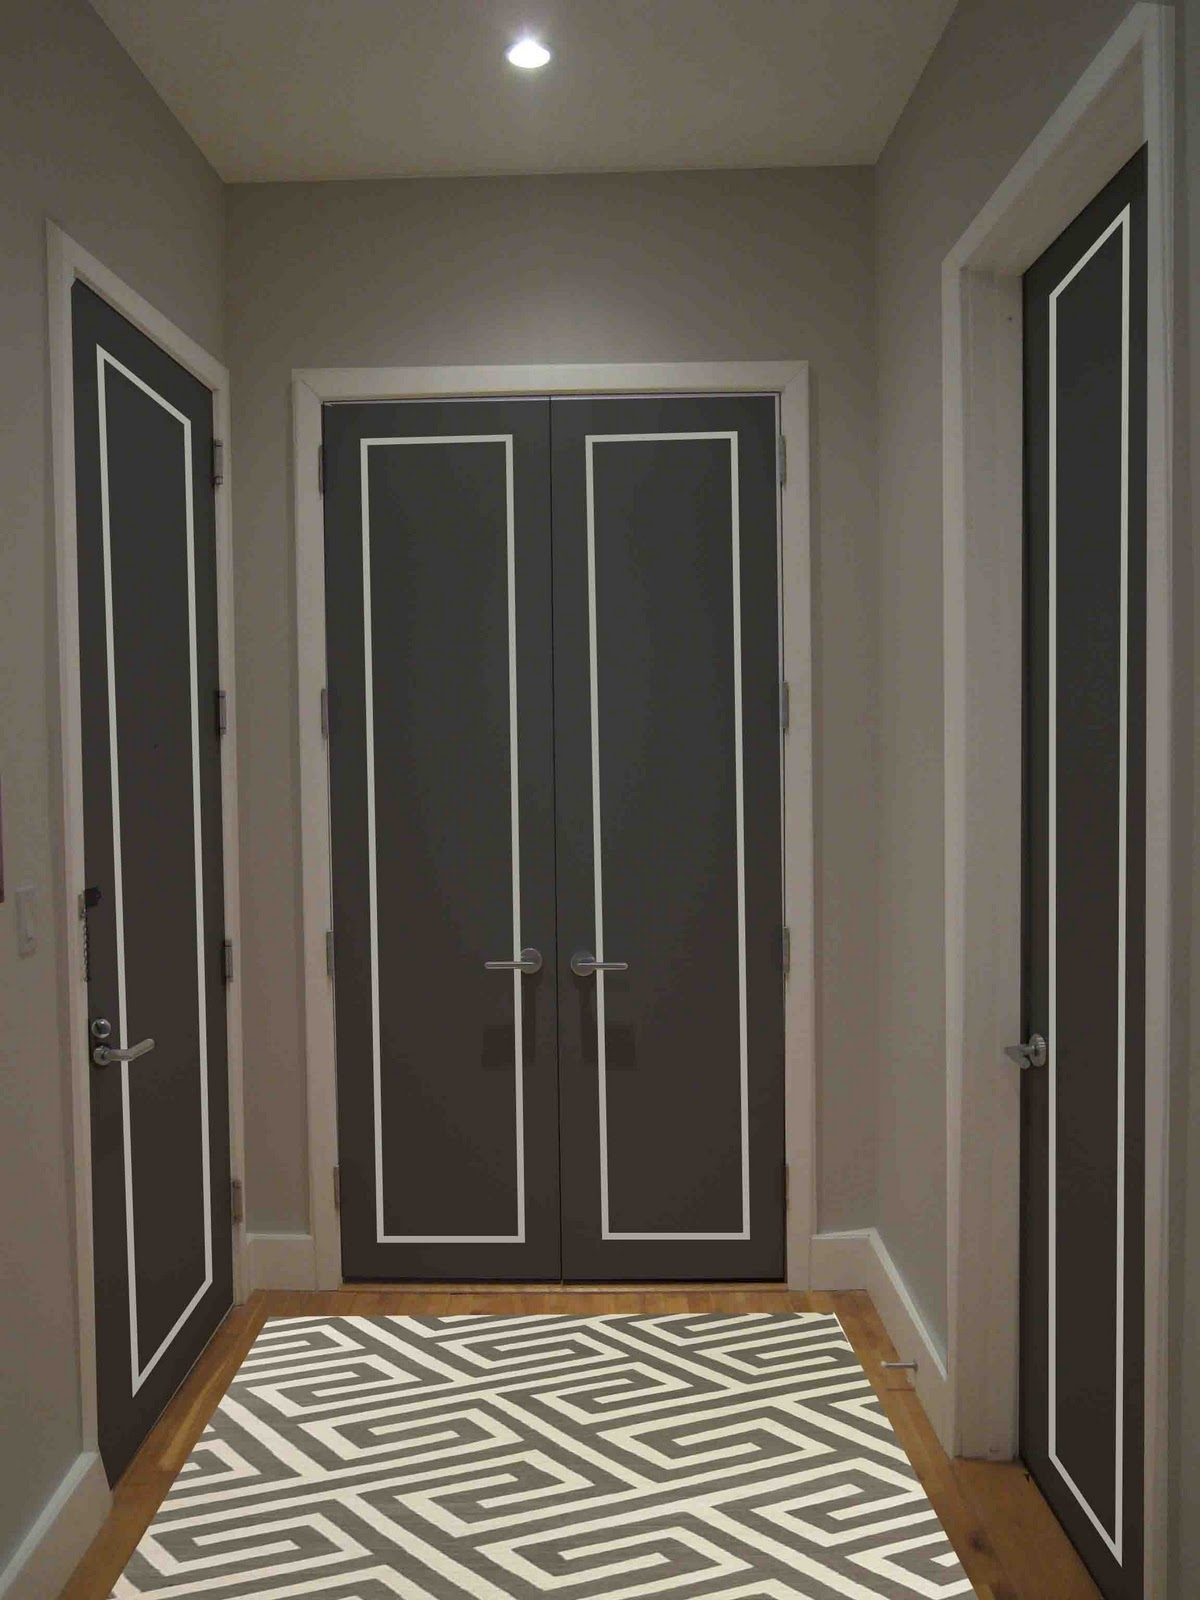 Interior Contemporary Gray Hallway Runner Fur Rugs With Floor With Regard To Runners For Hallways Contemporary (#15 of 20)